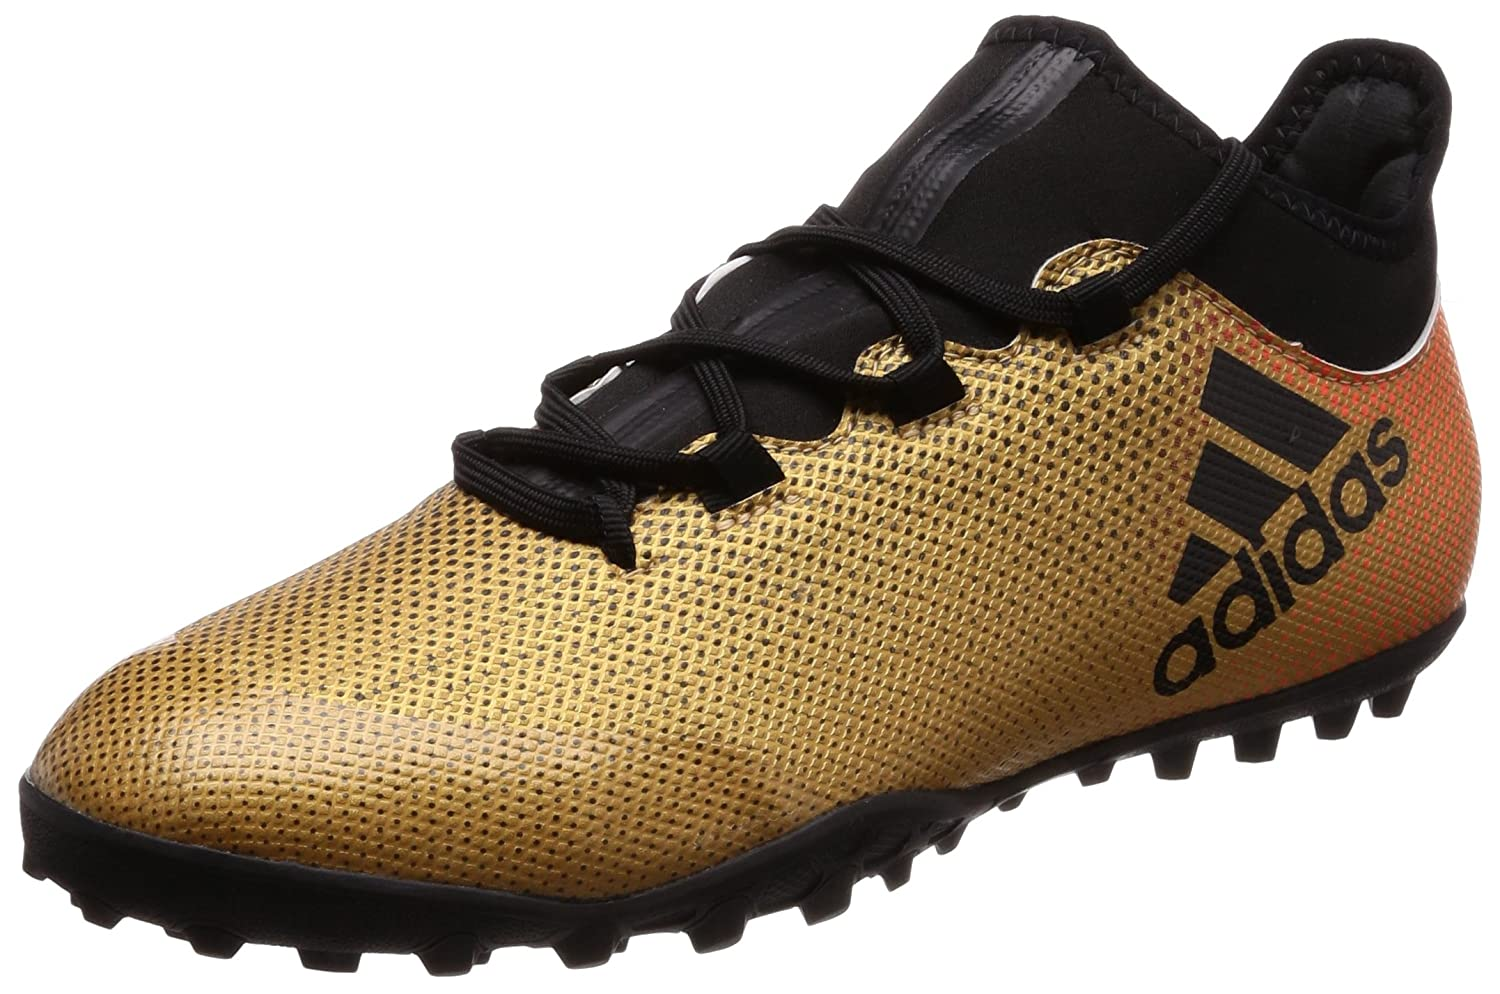 Or (Tactile or Met. F17 Core noir Solar rouge) adidas X Tango 17.3 TF, Chaussures de Football Homme 46 EU